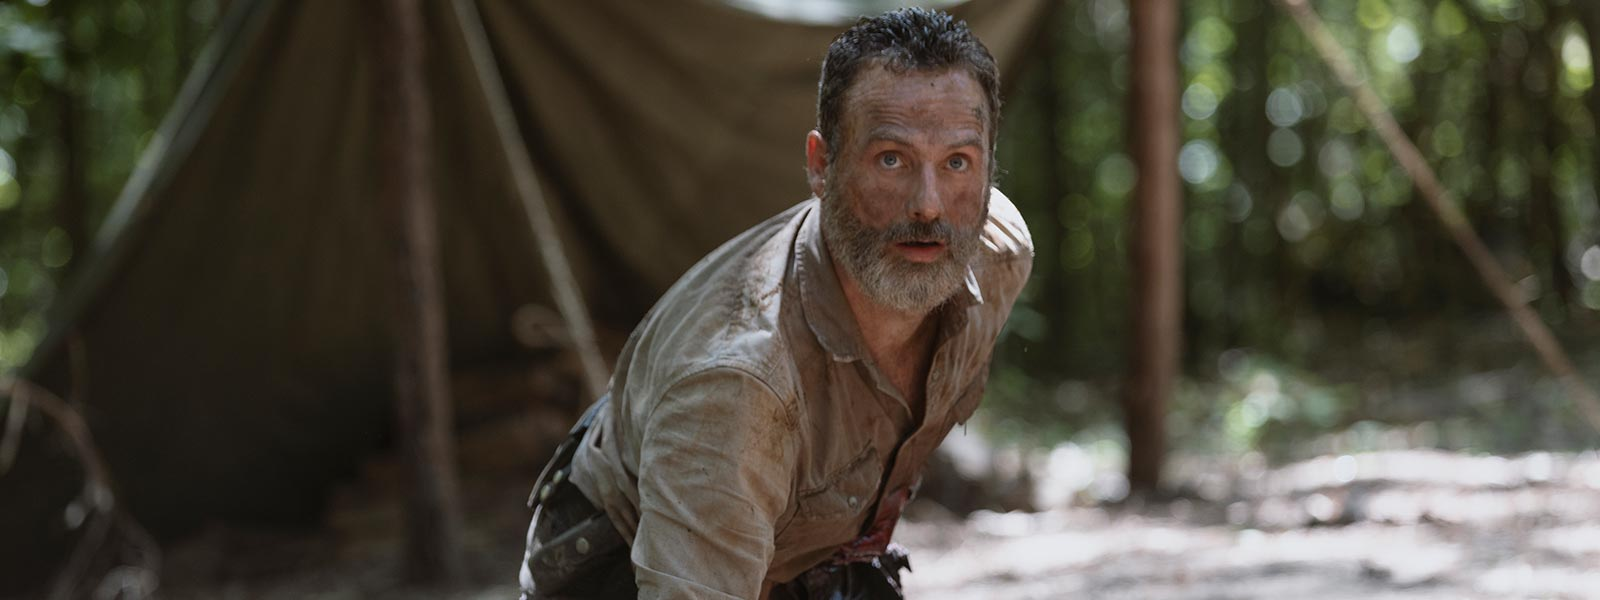 the-walking-dead-episode-905-rick-lincoln-post-800×600